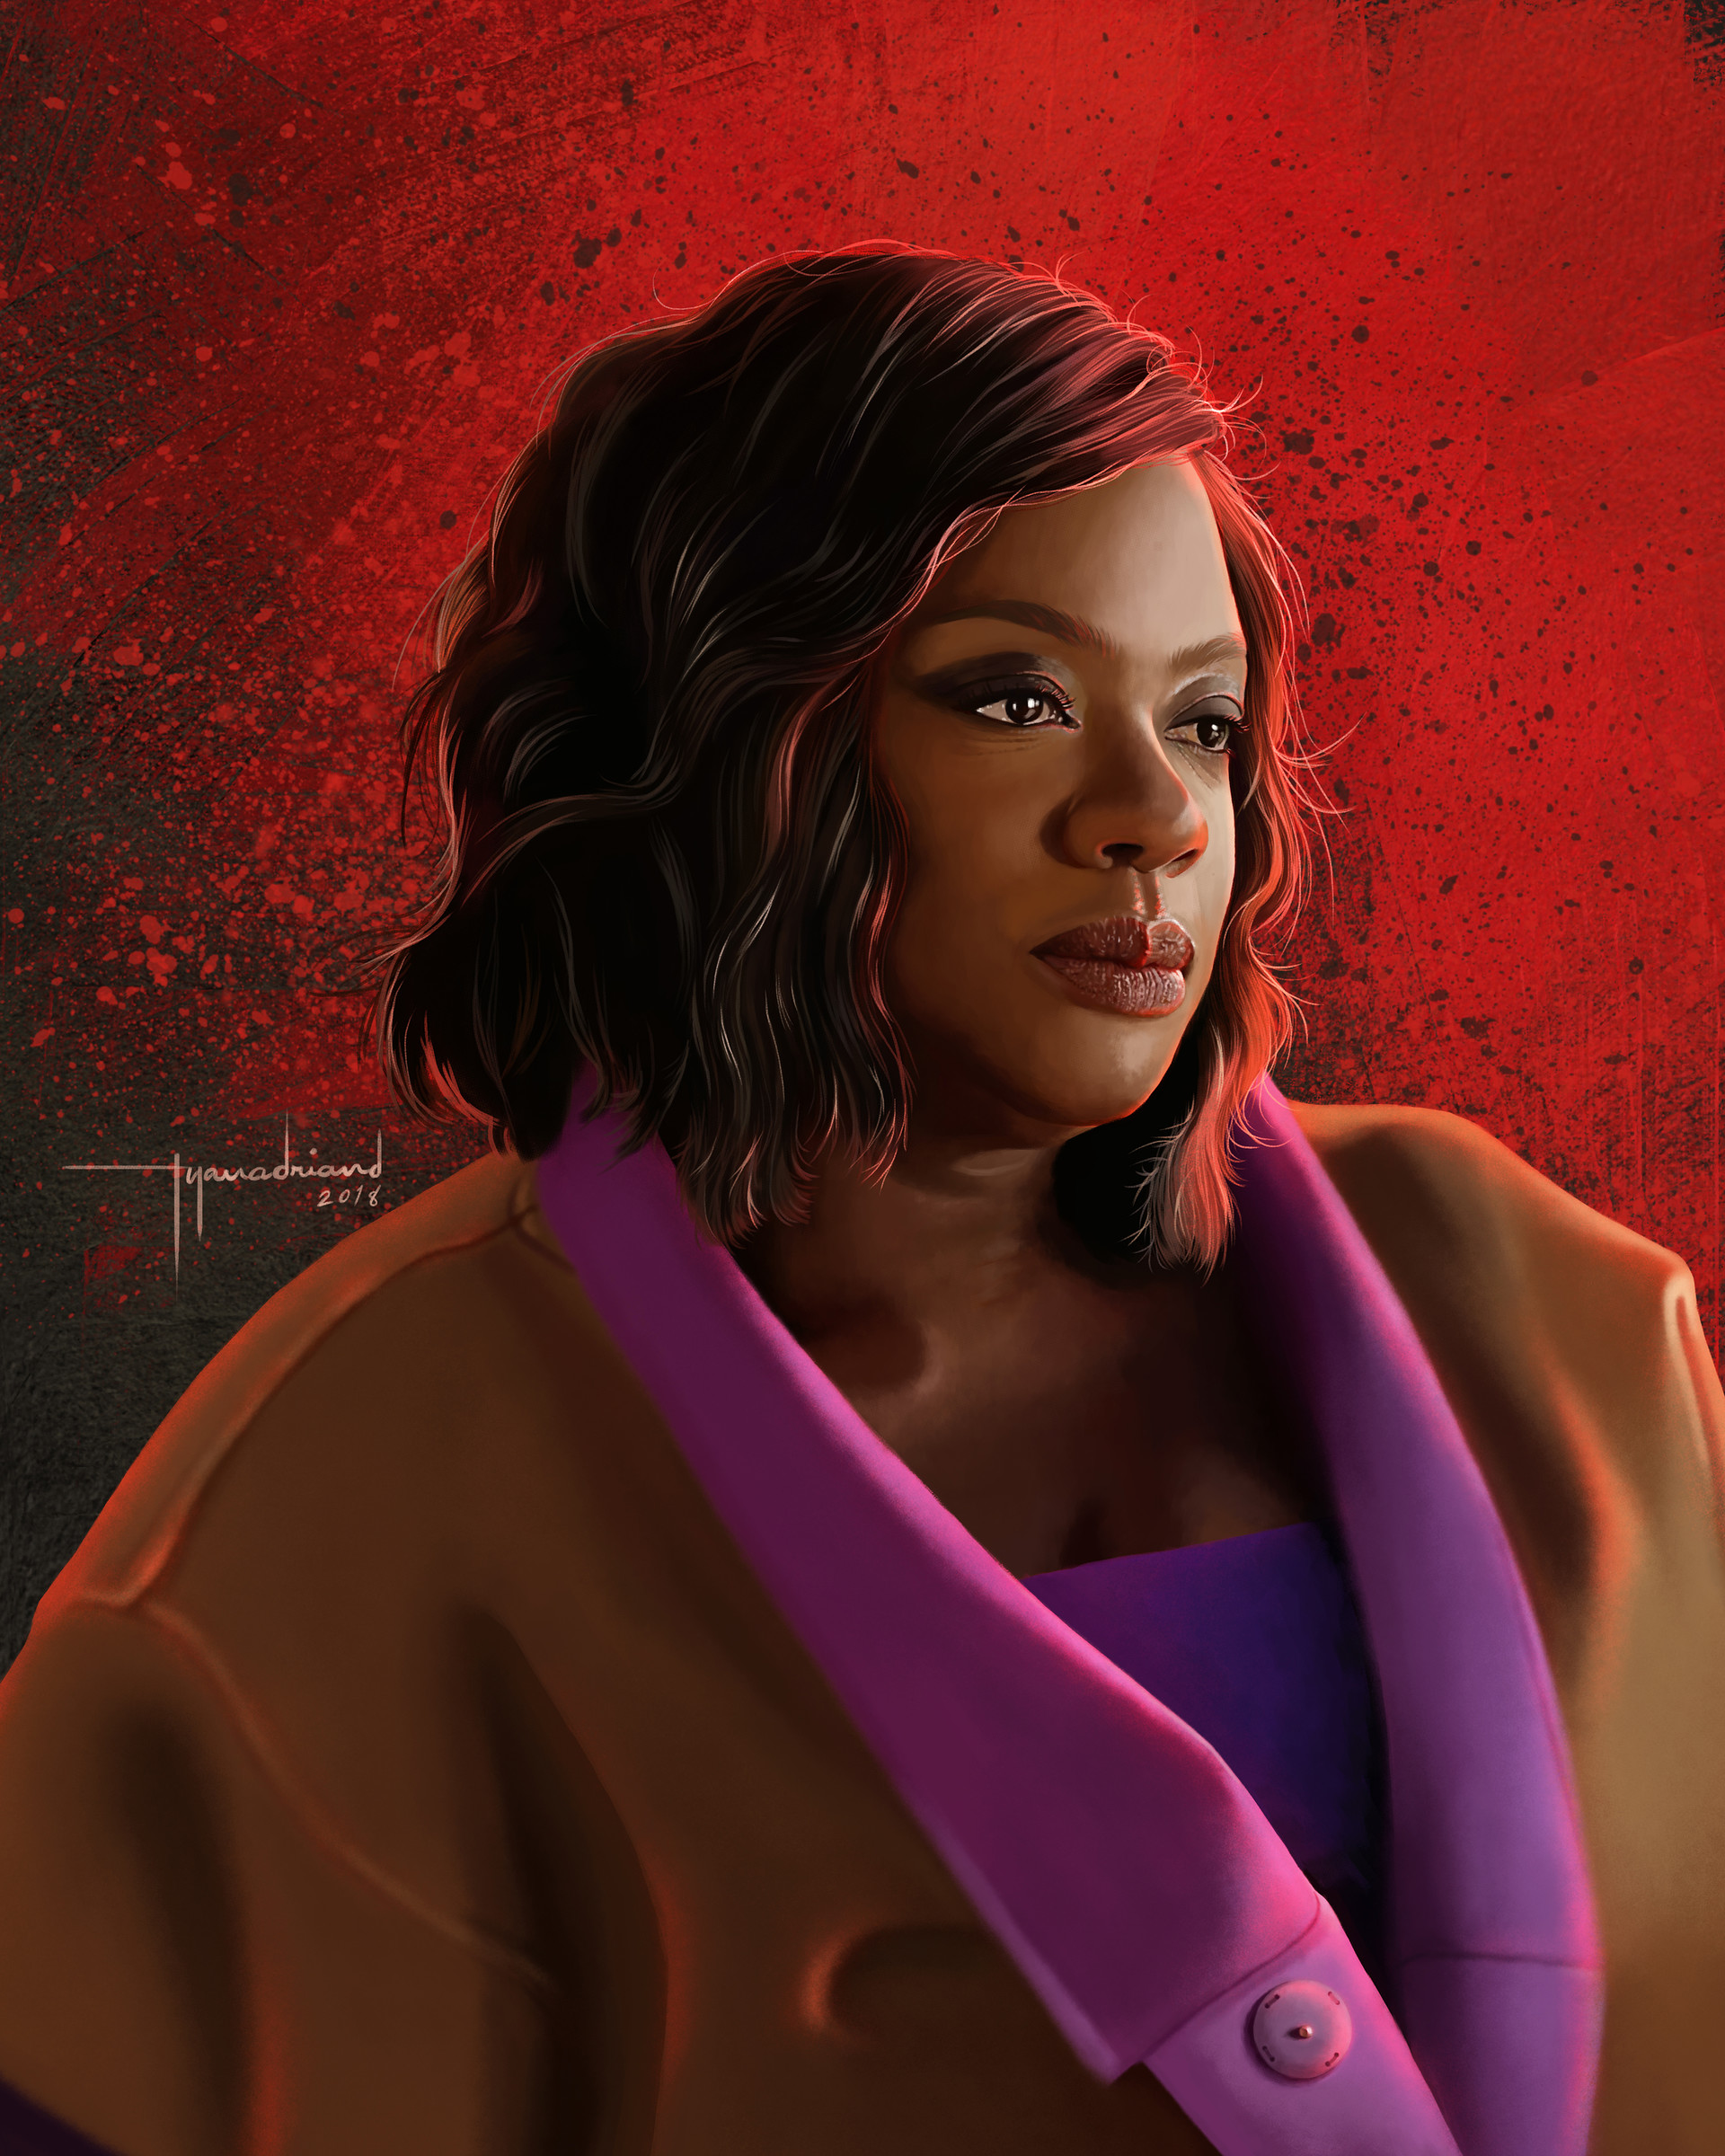 Rye adriano annalise keating digital painting lowres